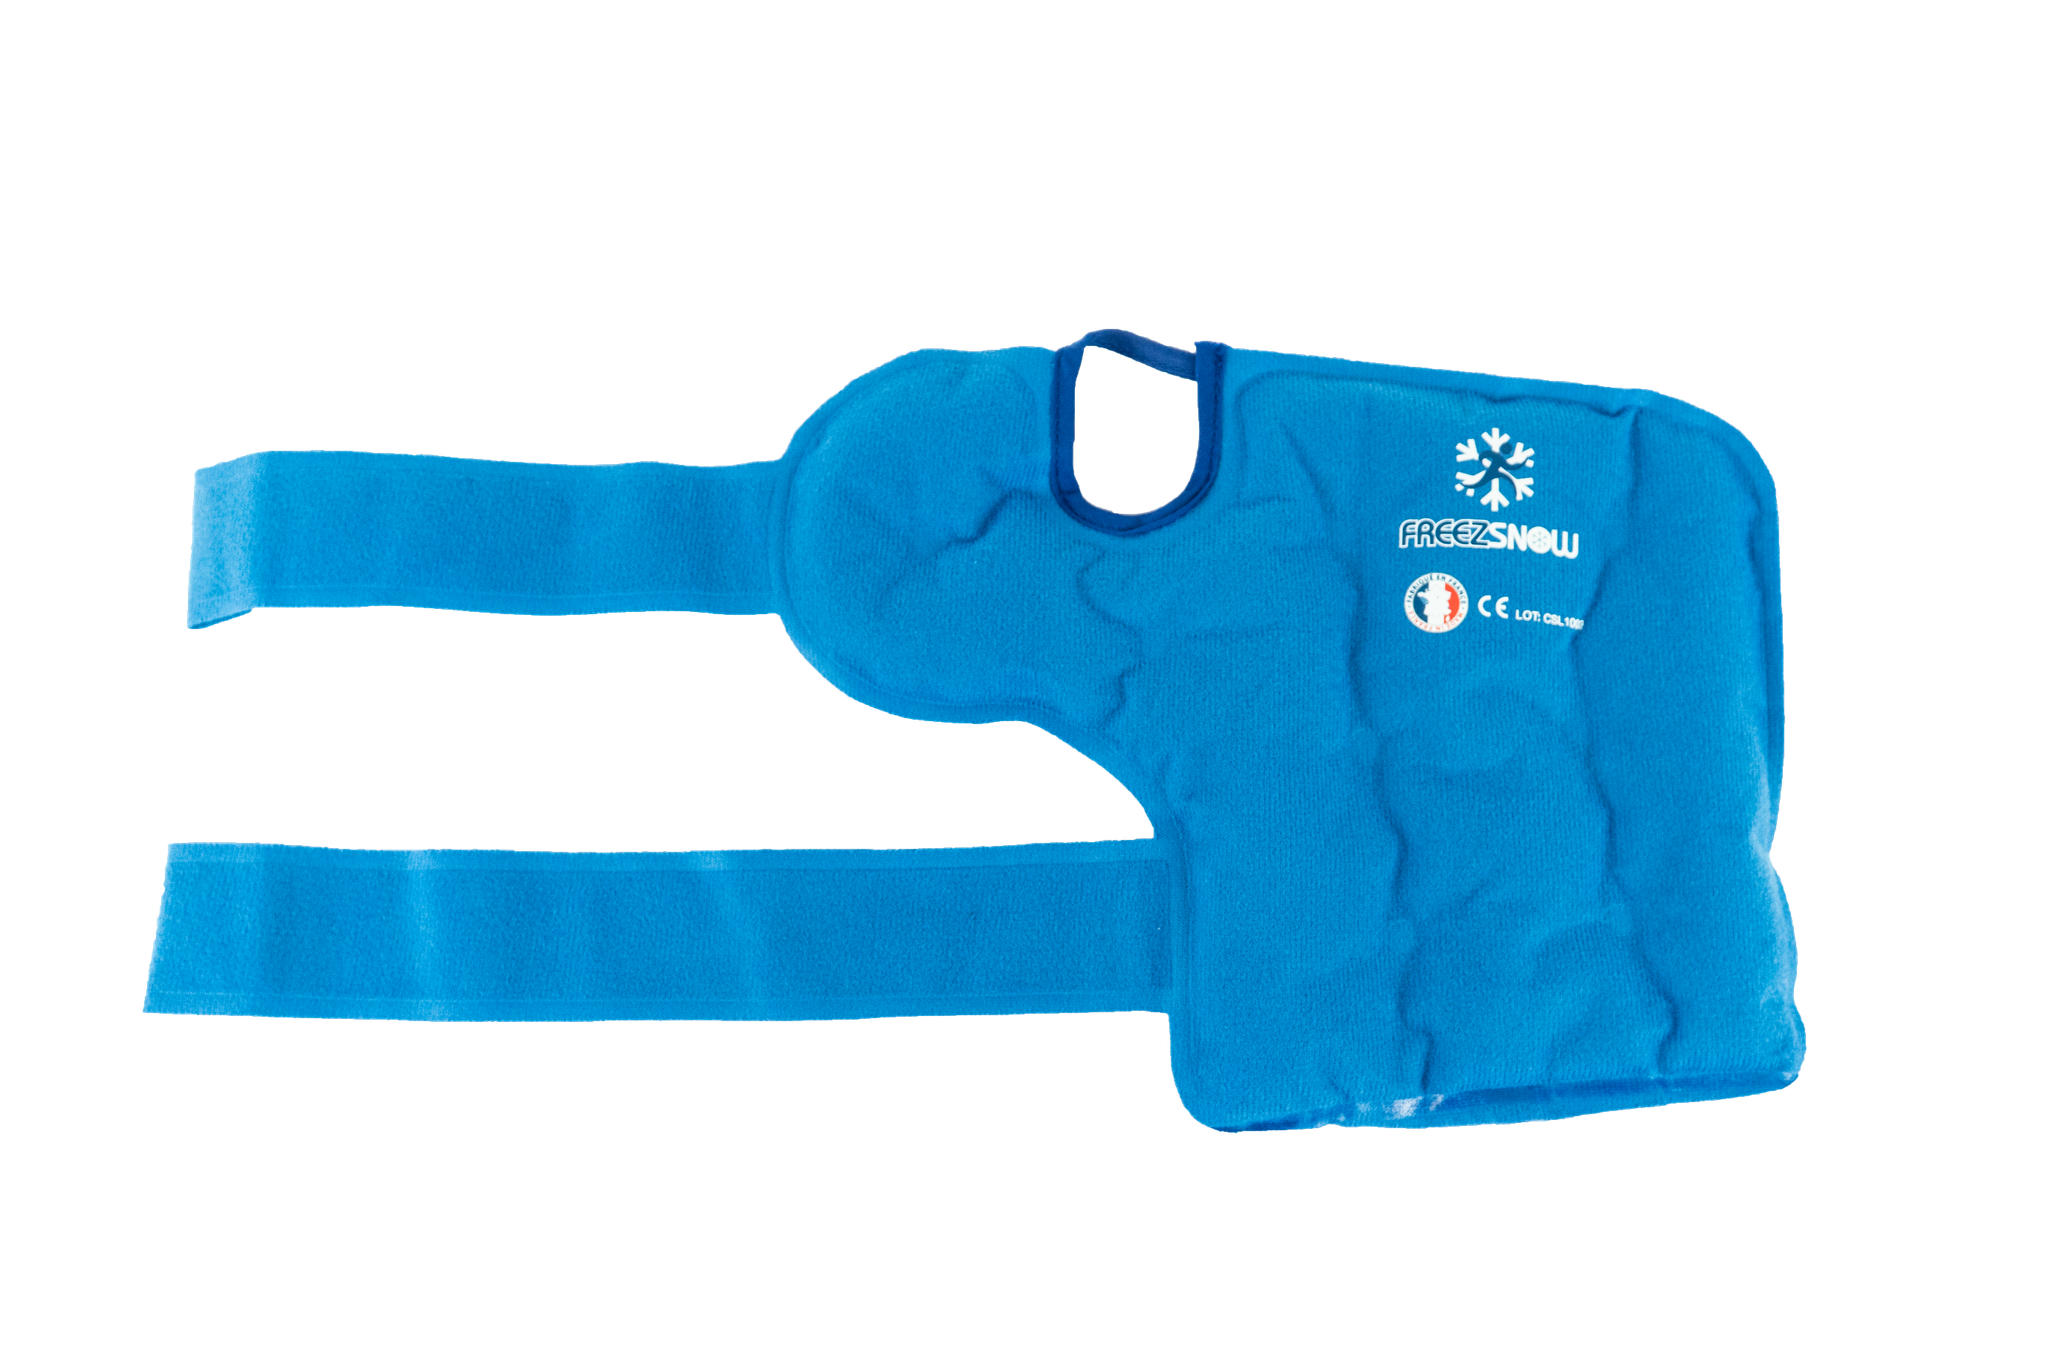 X2: It comes with two long-lasting Freezsnow® cold packs including a spare set.